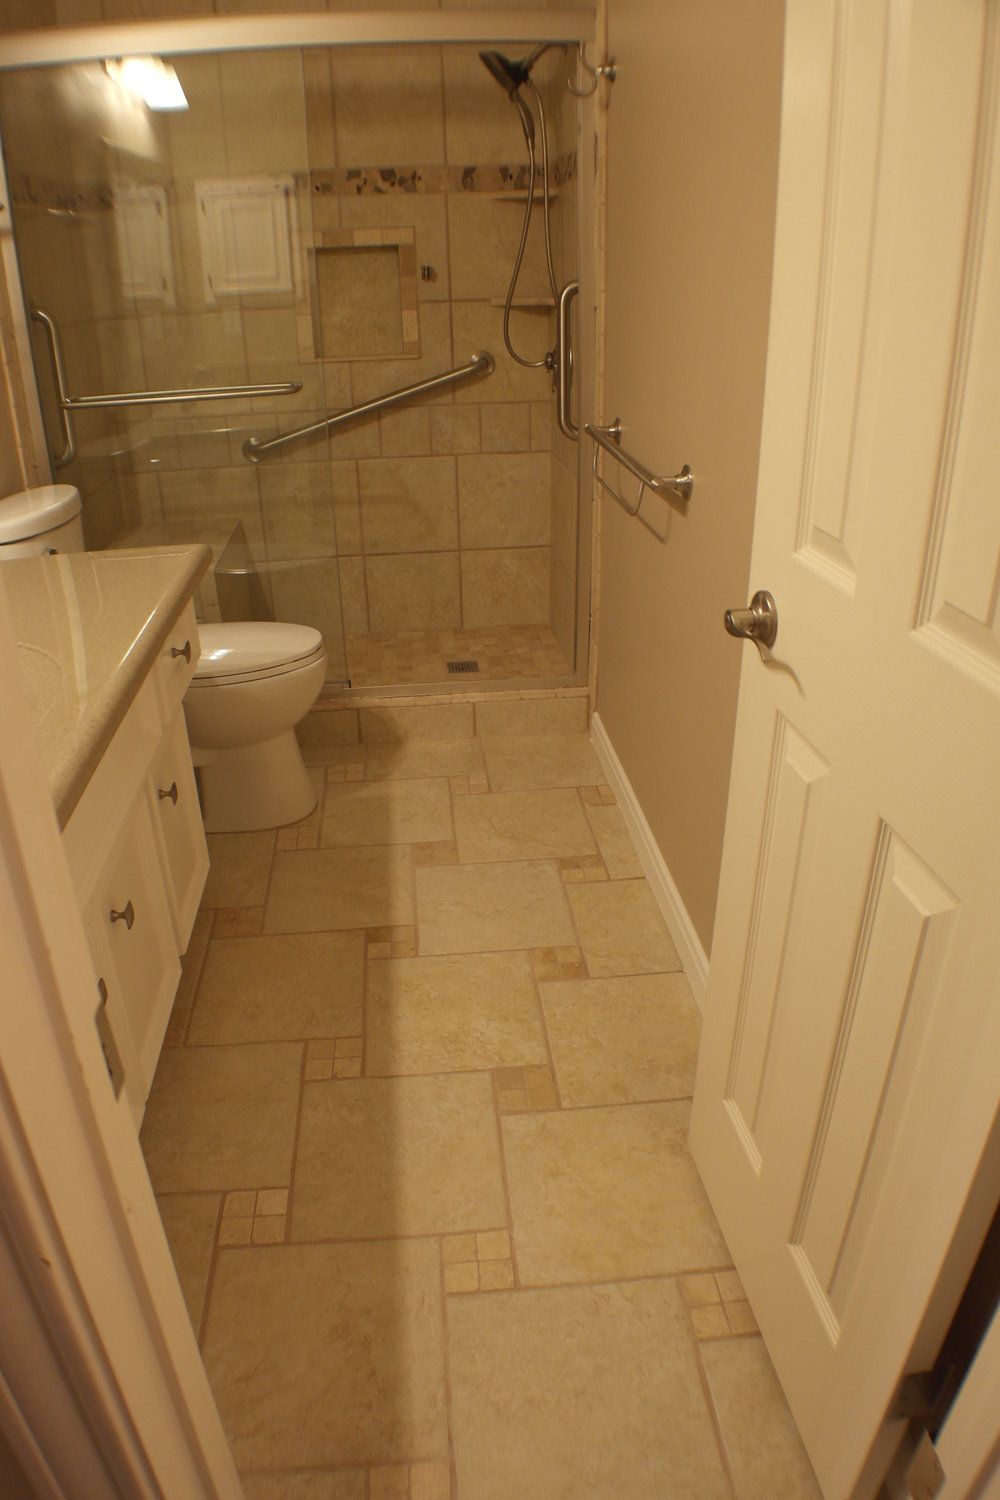 TUBTOSHOWERS CONVERSIONS EZACCESSBATHROOMS.COM 8322028453 COKER 052.JPG